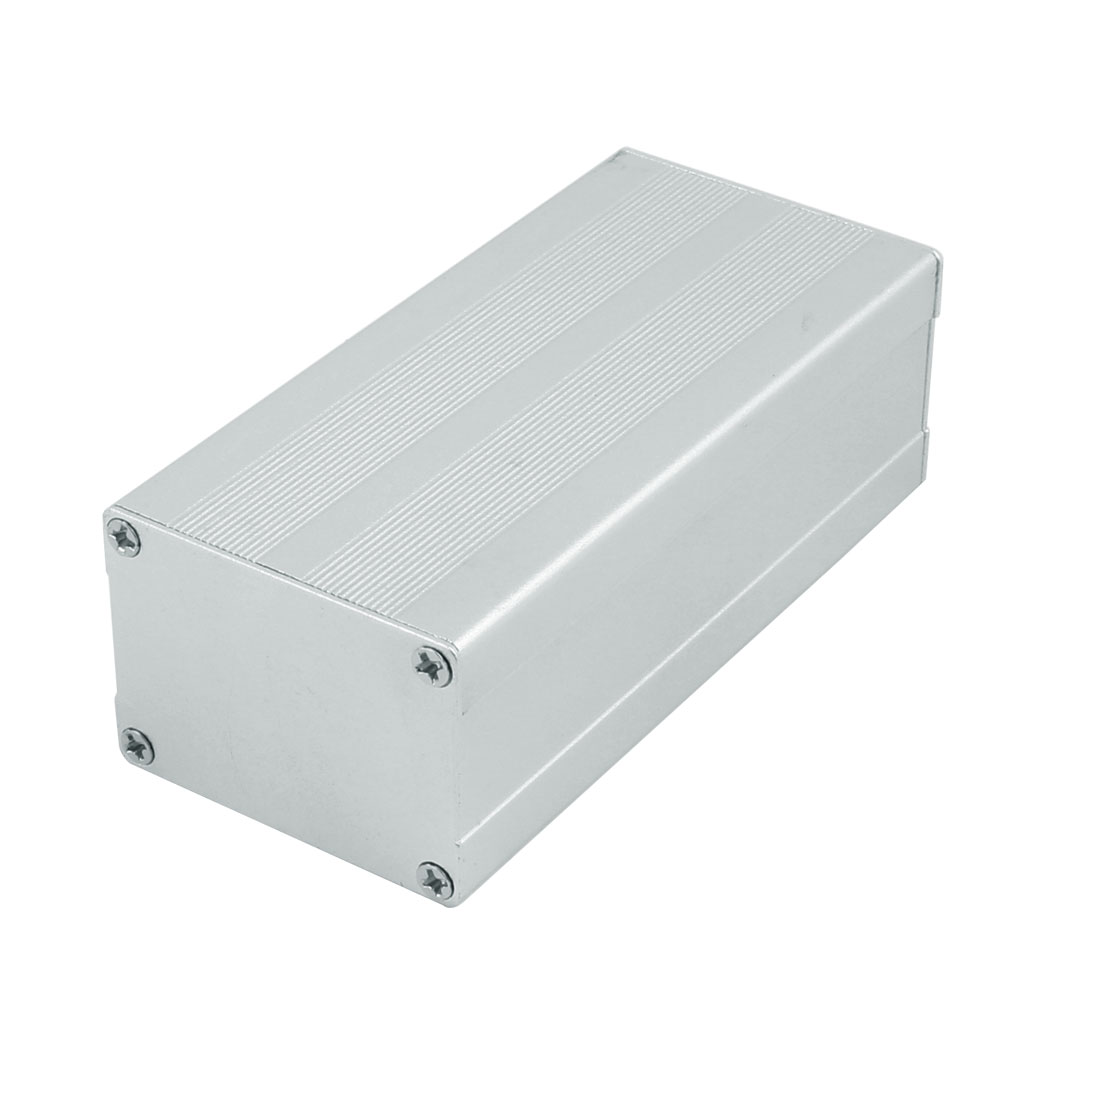 113 x 52 x 38mm Multi-purpose Electronic Extruded Aluminum Enclosure Silver Tone